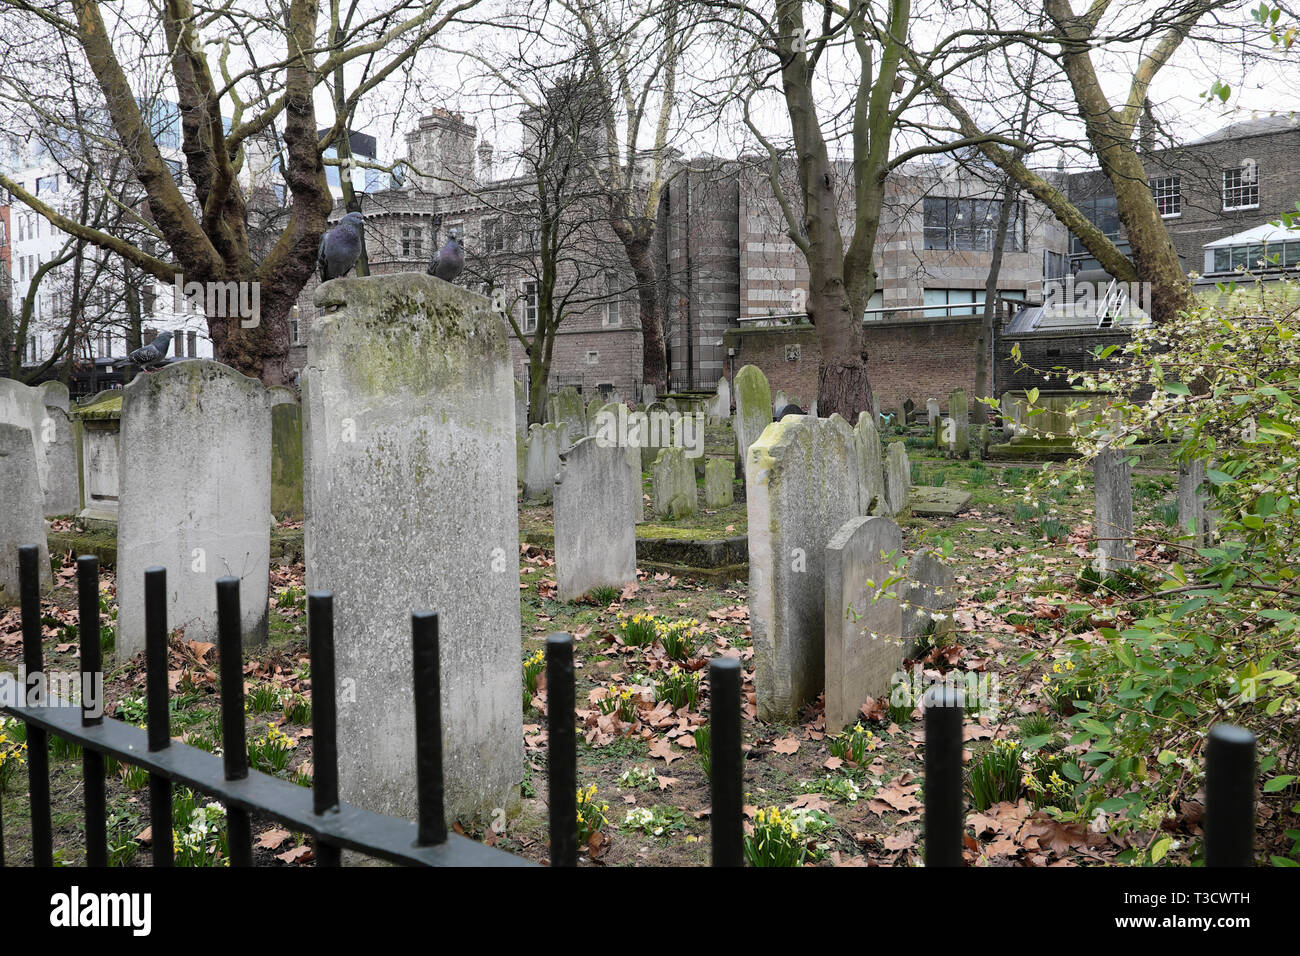 Gravestones in Bunhill Fields Cemetery on City Road in London EC1 England UK  KATHY DEWITT - Stock Image